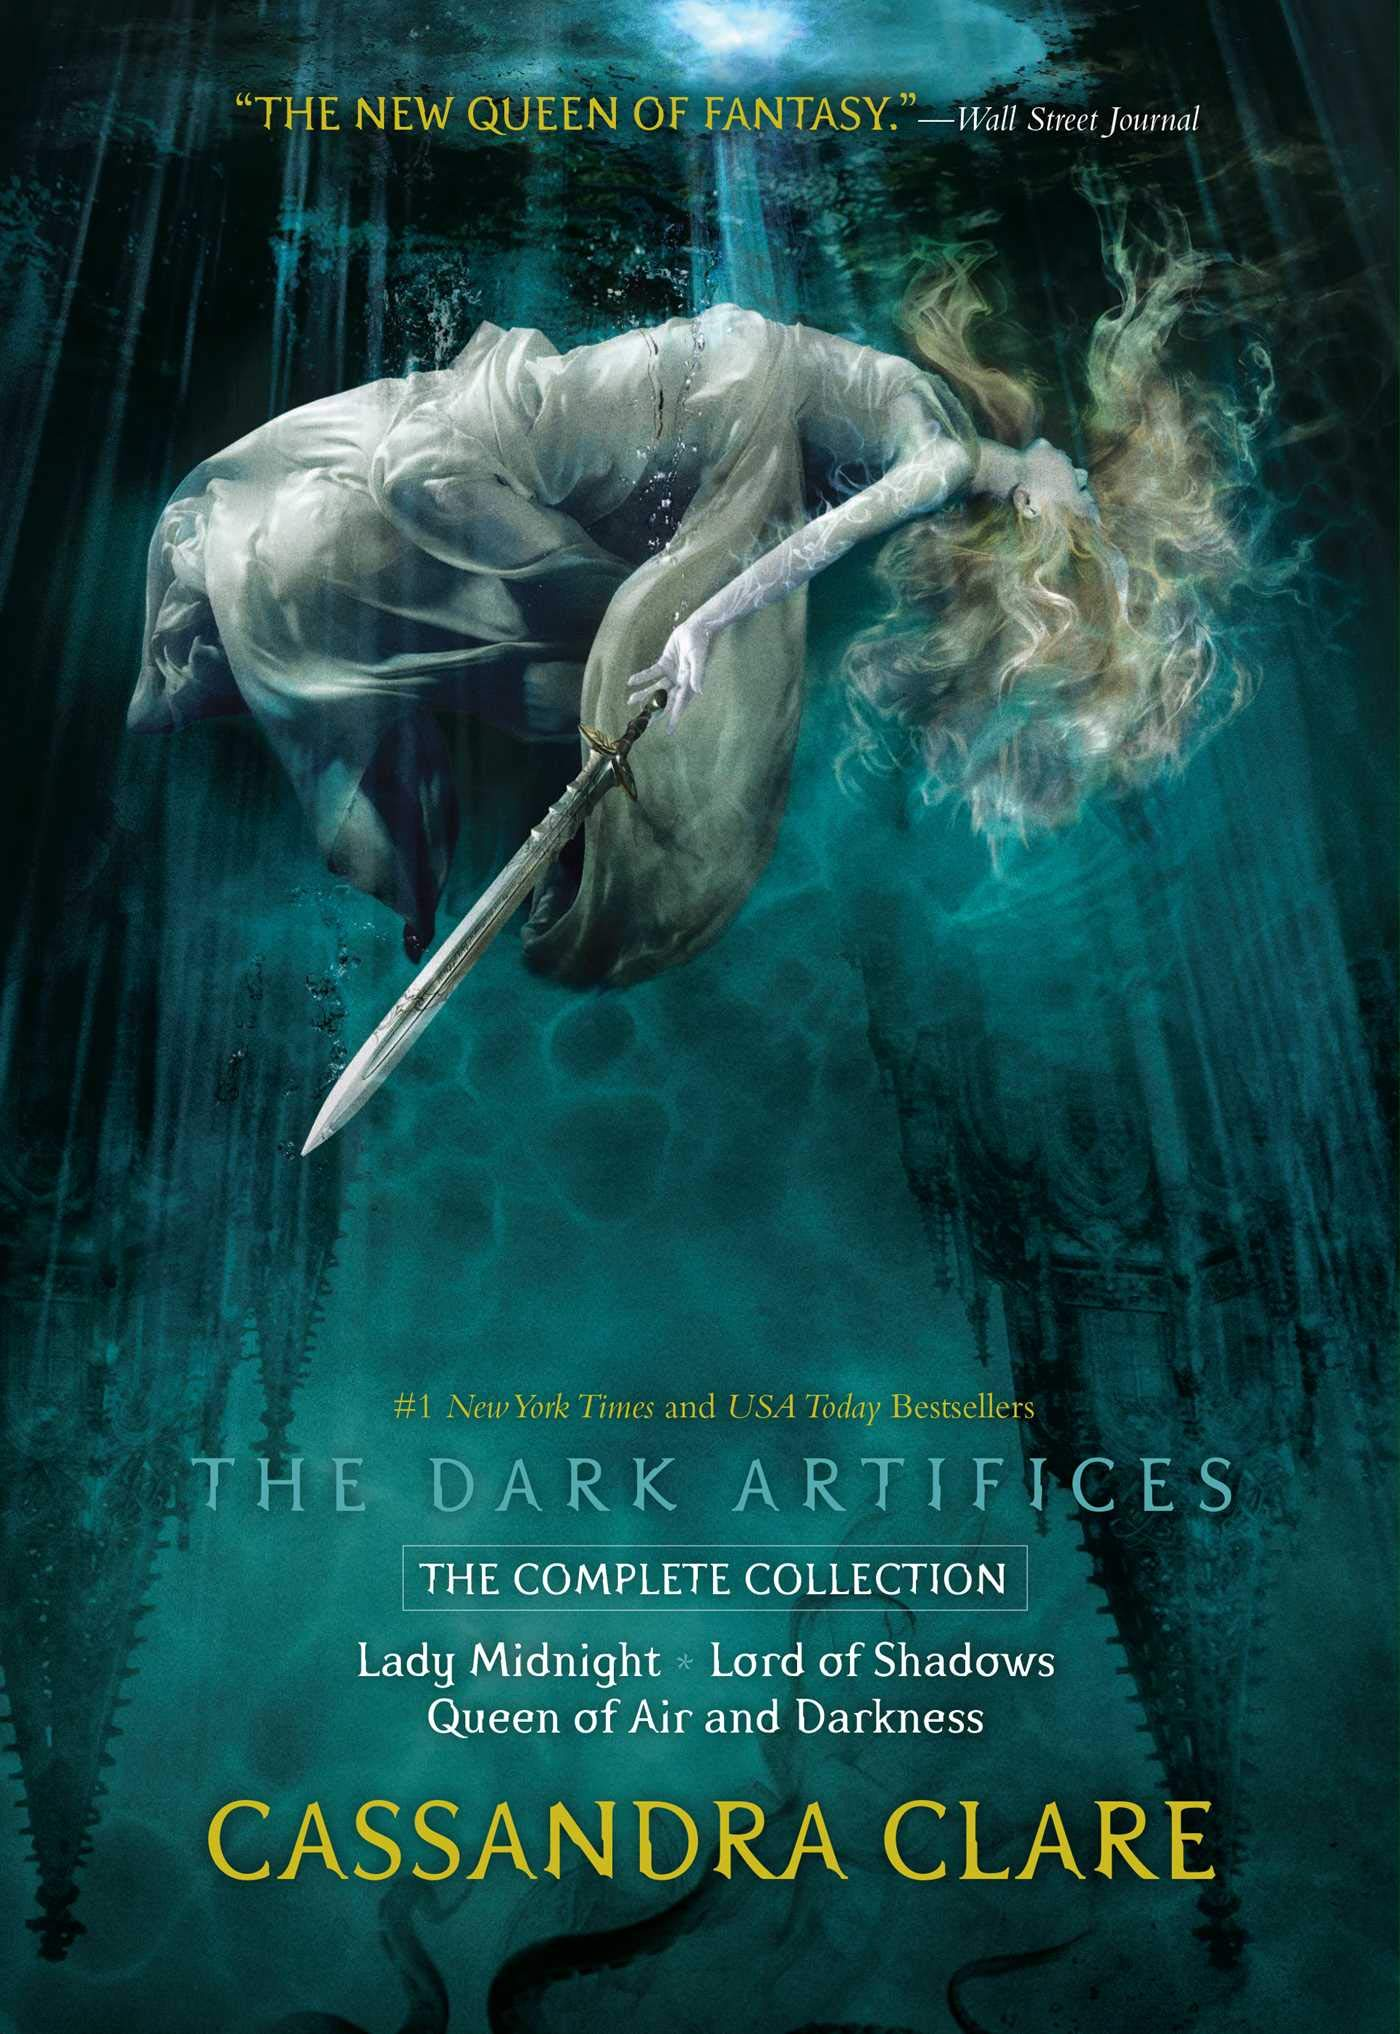 The Dark Artifices, the Complete Collection: Lady Midnight; Lord of Shadows; Queen of Air and Darkness by Margaret K. McElderry Books